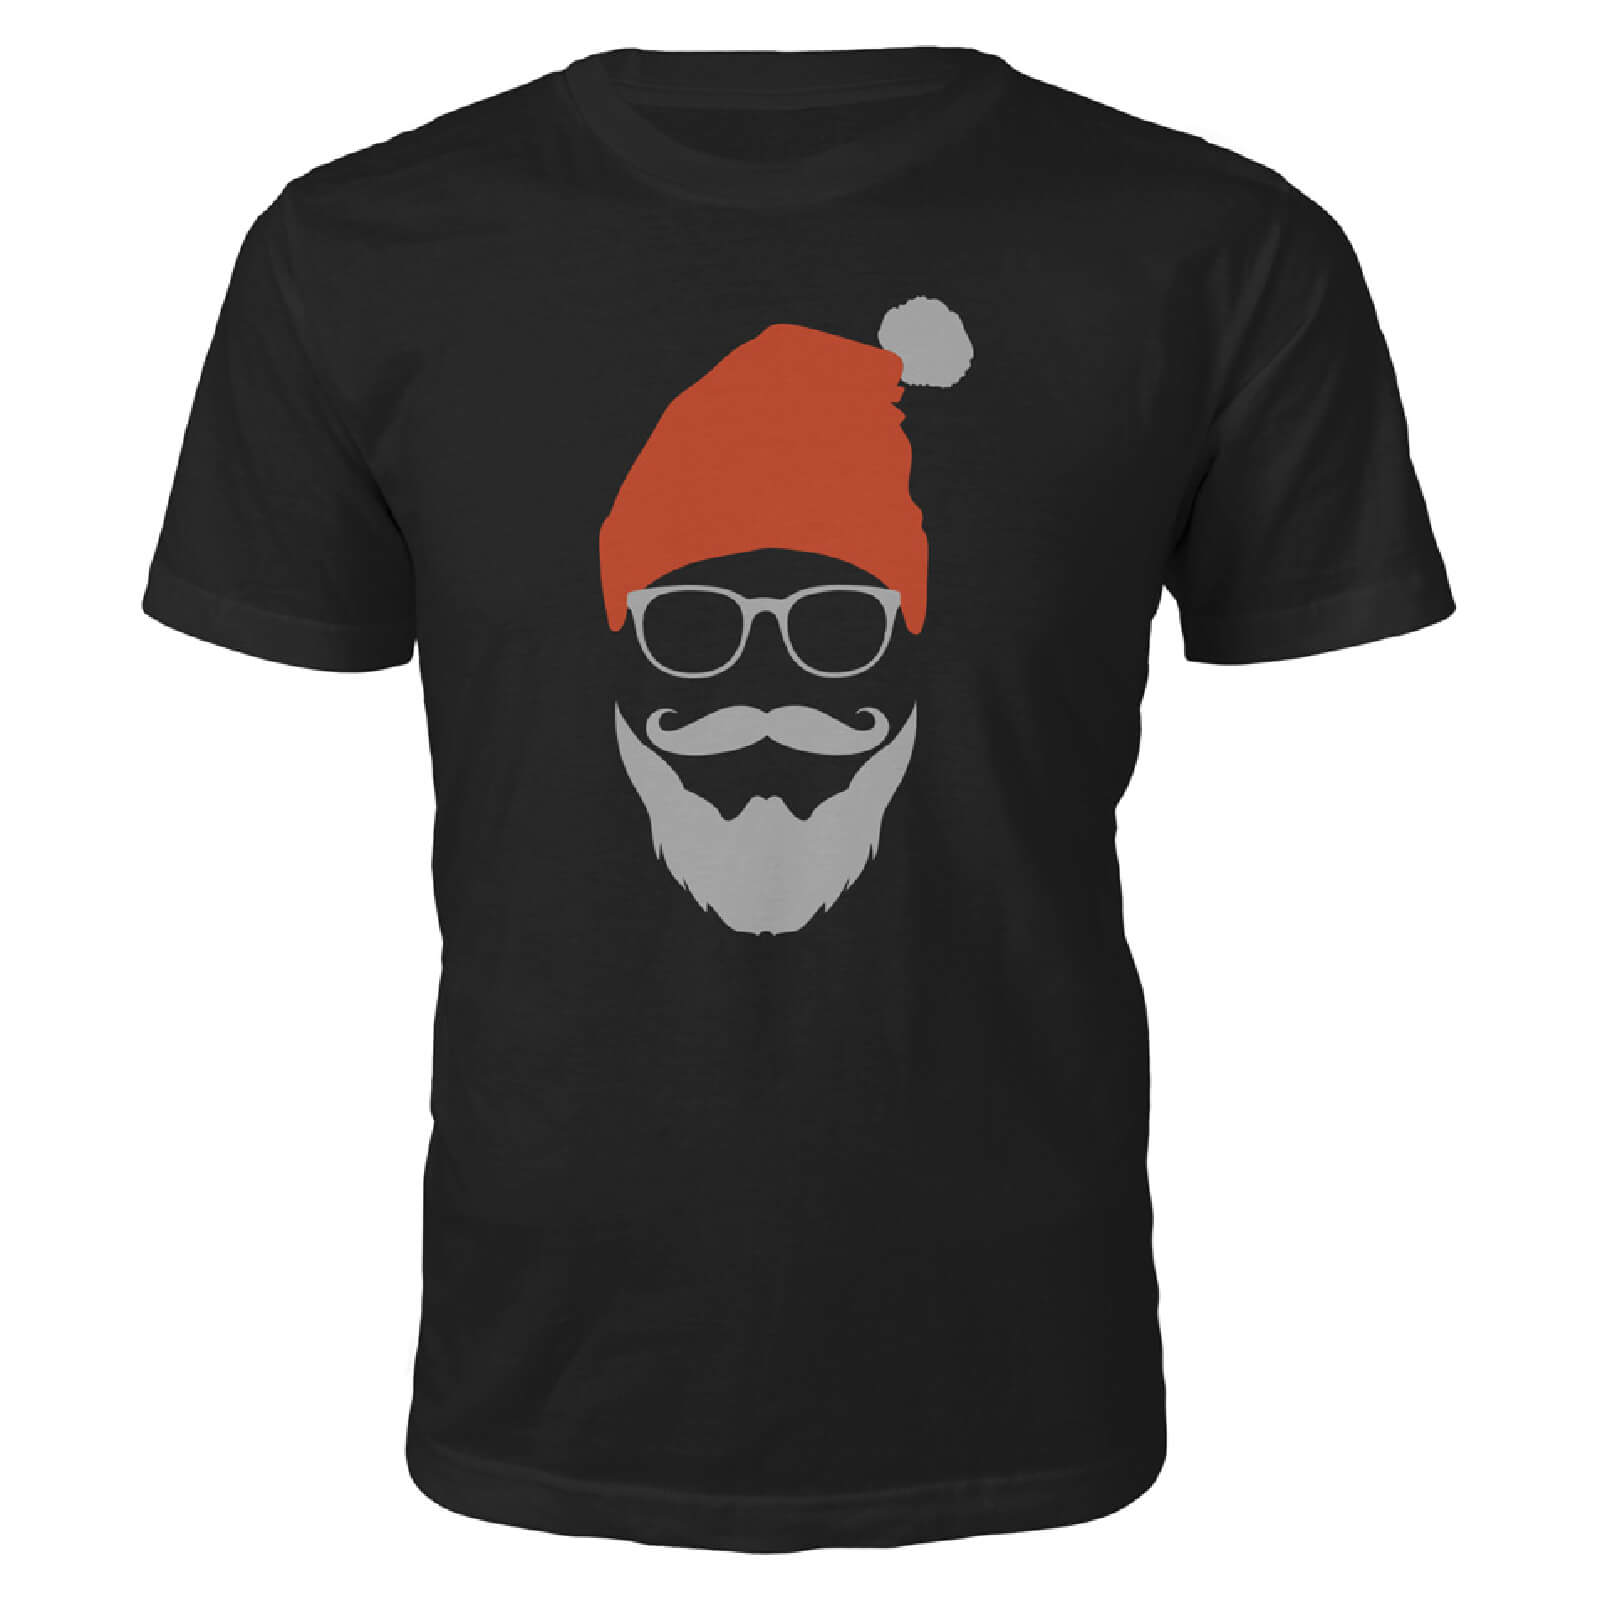 Cool Santa Christmas T-Shirt - Black